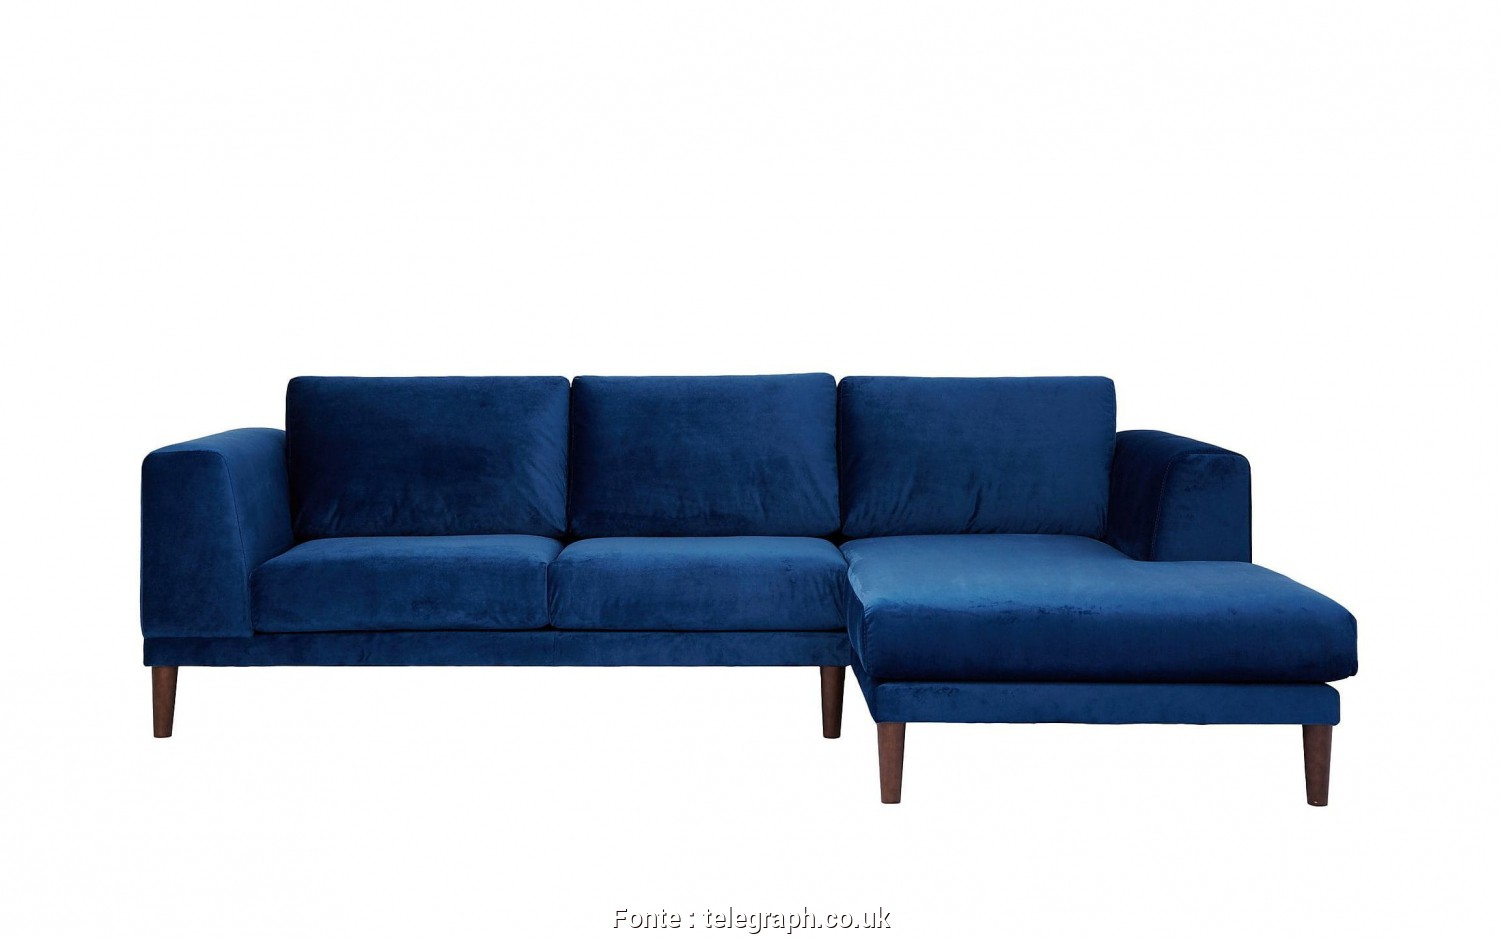 Futon Ikea France, Elegante 17 Of, Best Sofas, Couches To, For, Budgets